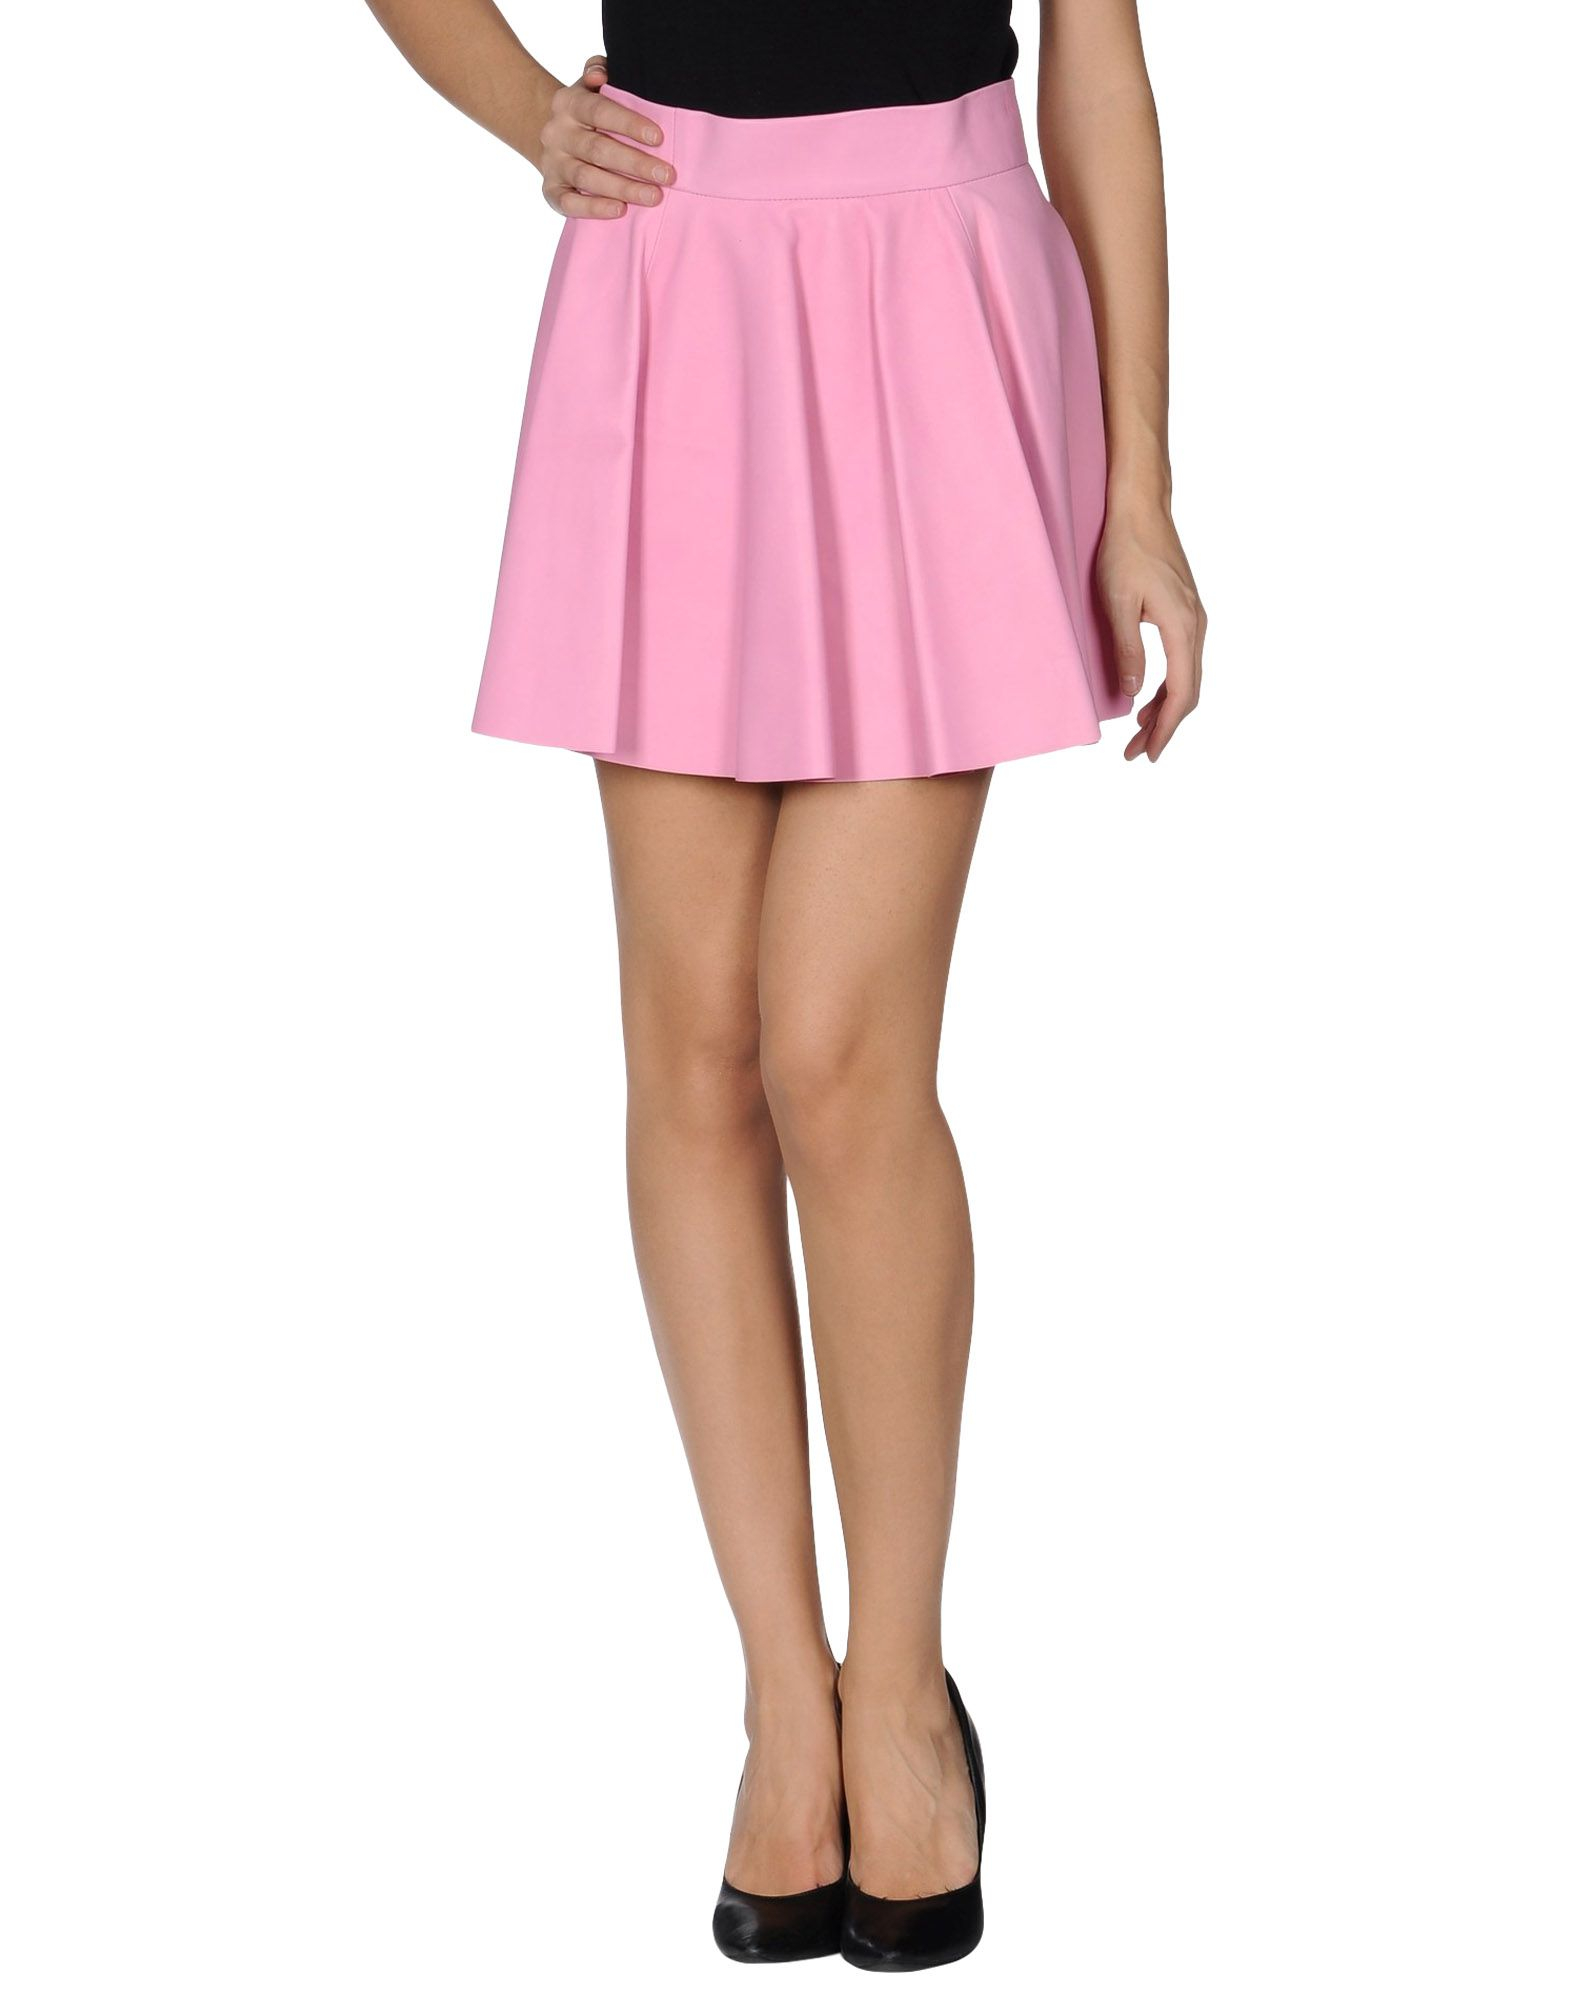 olympia le leather skirt in pink lyst